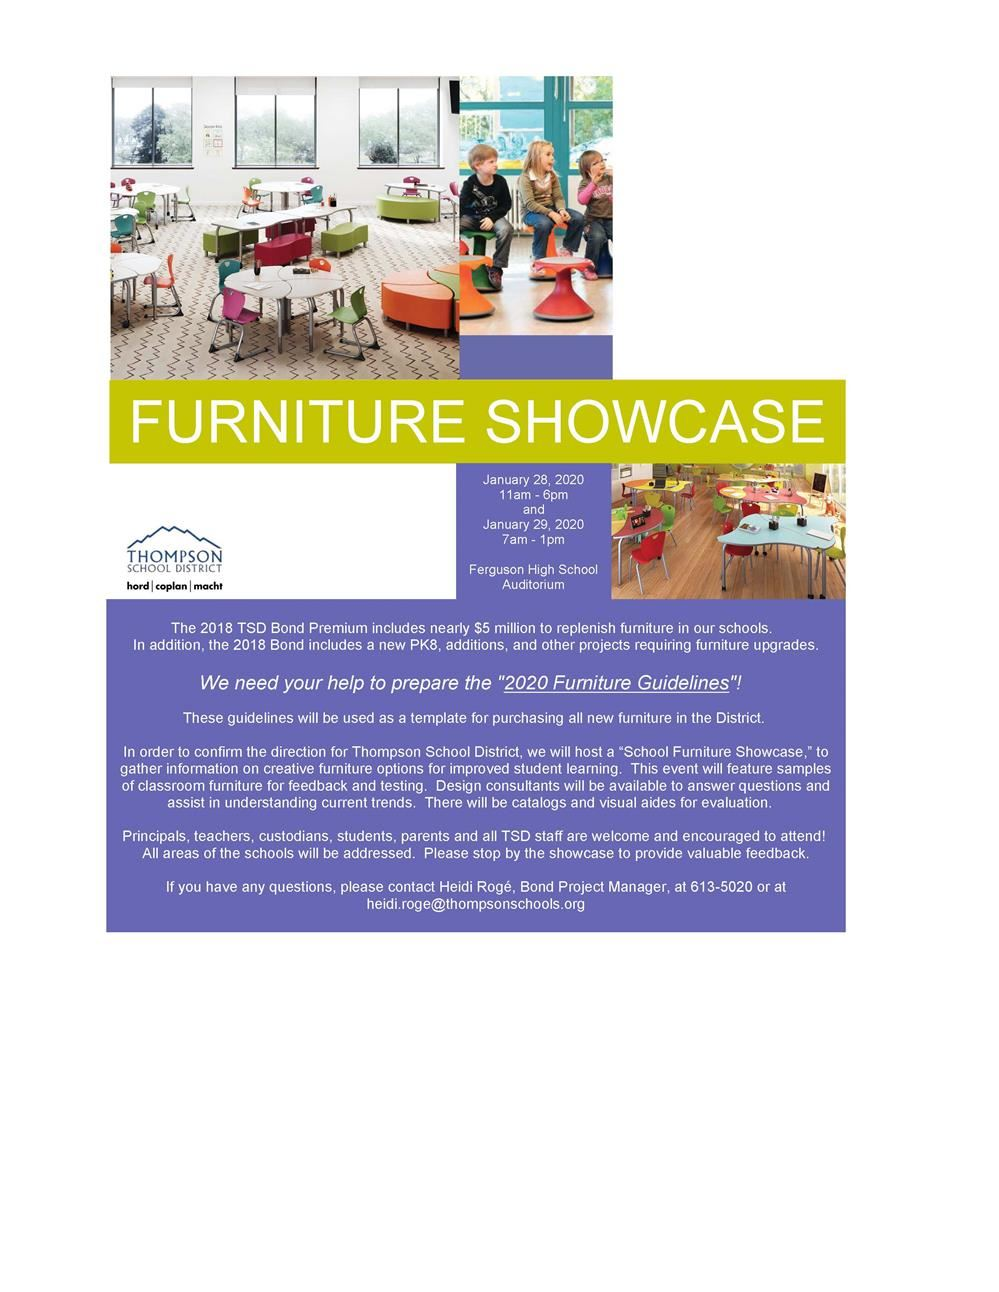 Furniture Showcase ~ January 28th and January 29th